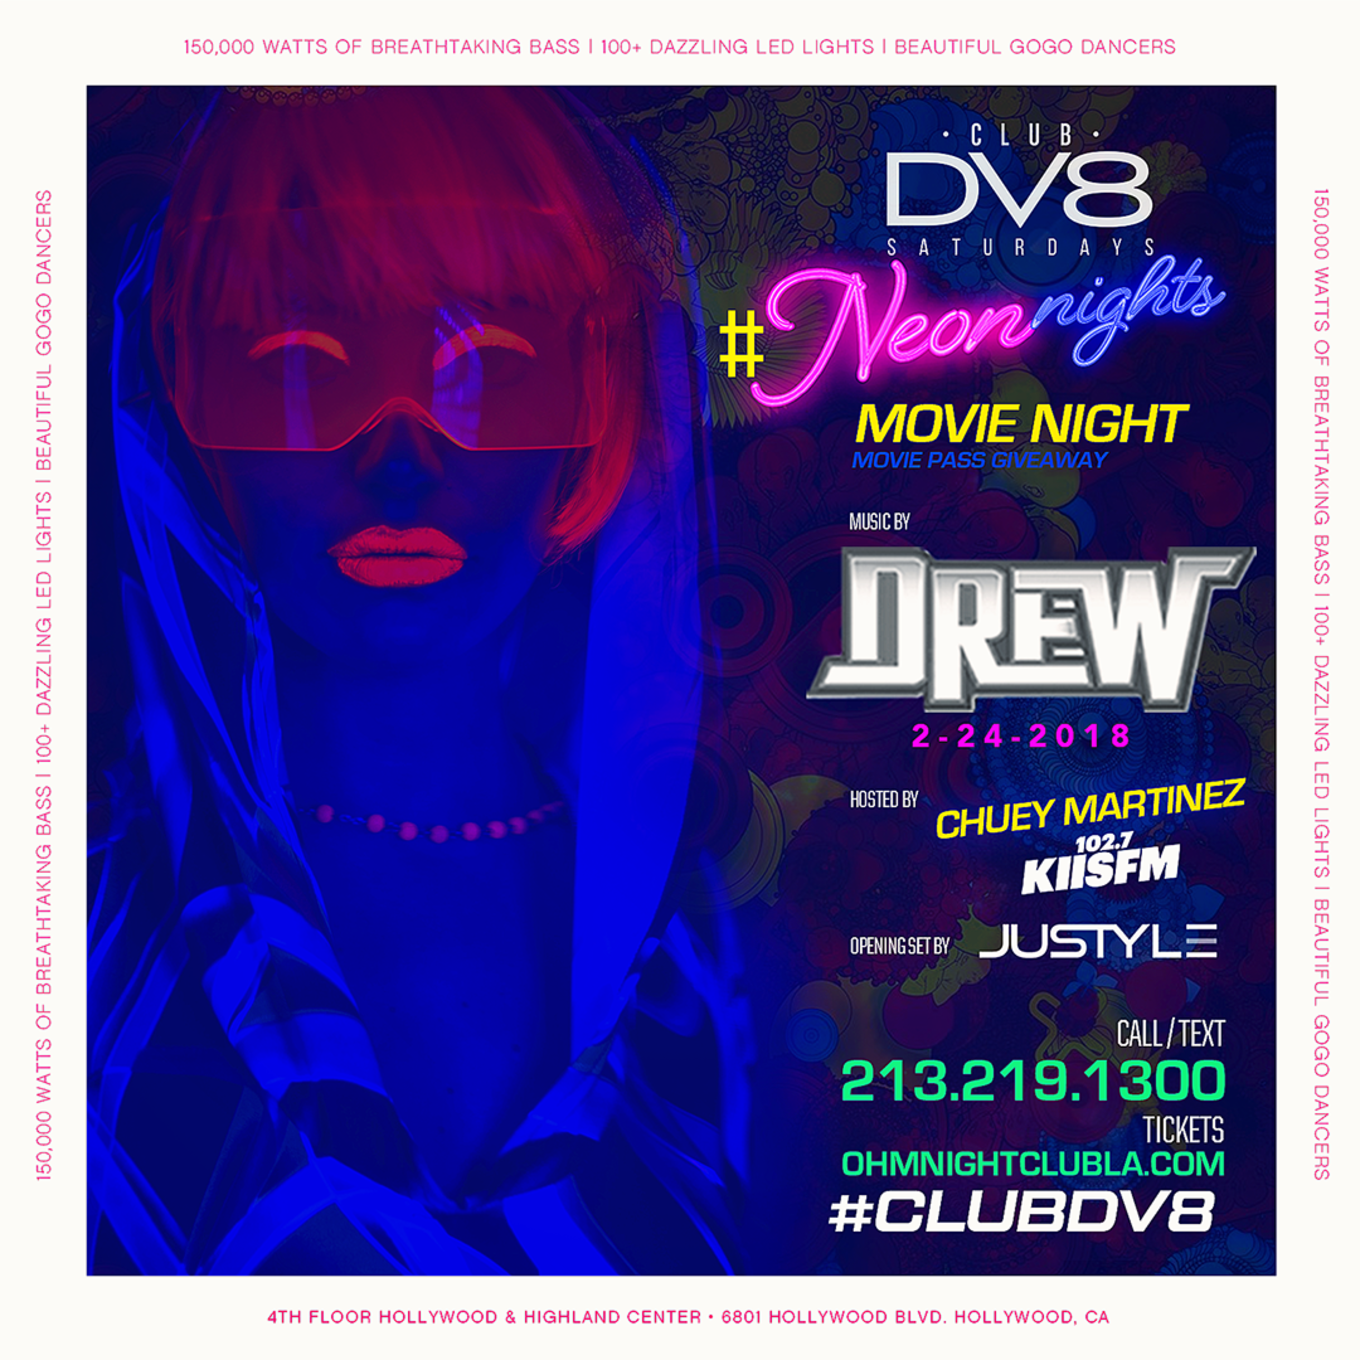 Mwwb Tour With Ohmms In February: CLUB DV8's #NeonNights Movie Night W/ DJ Drew